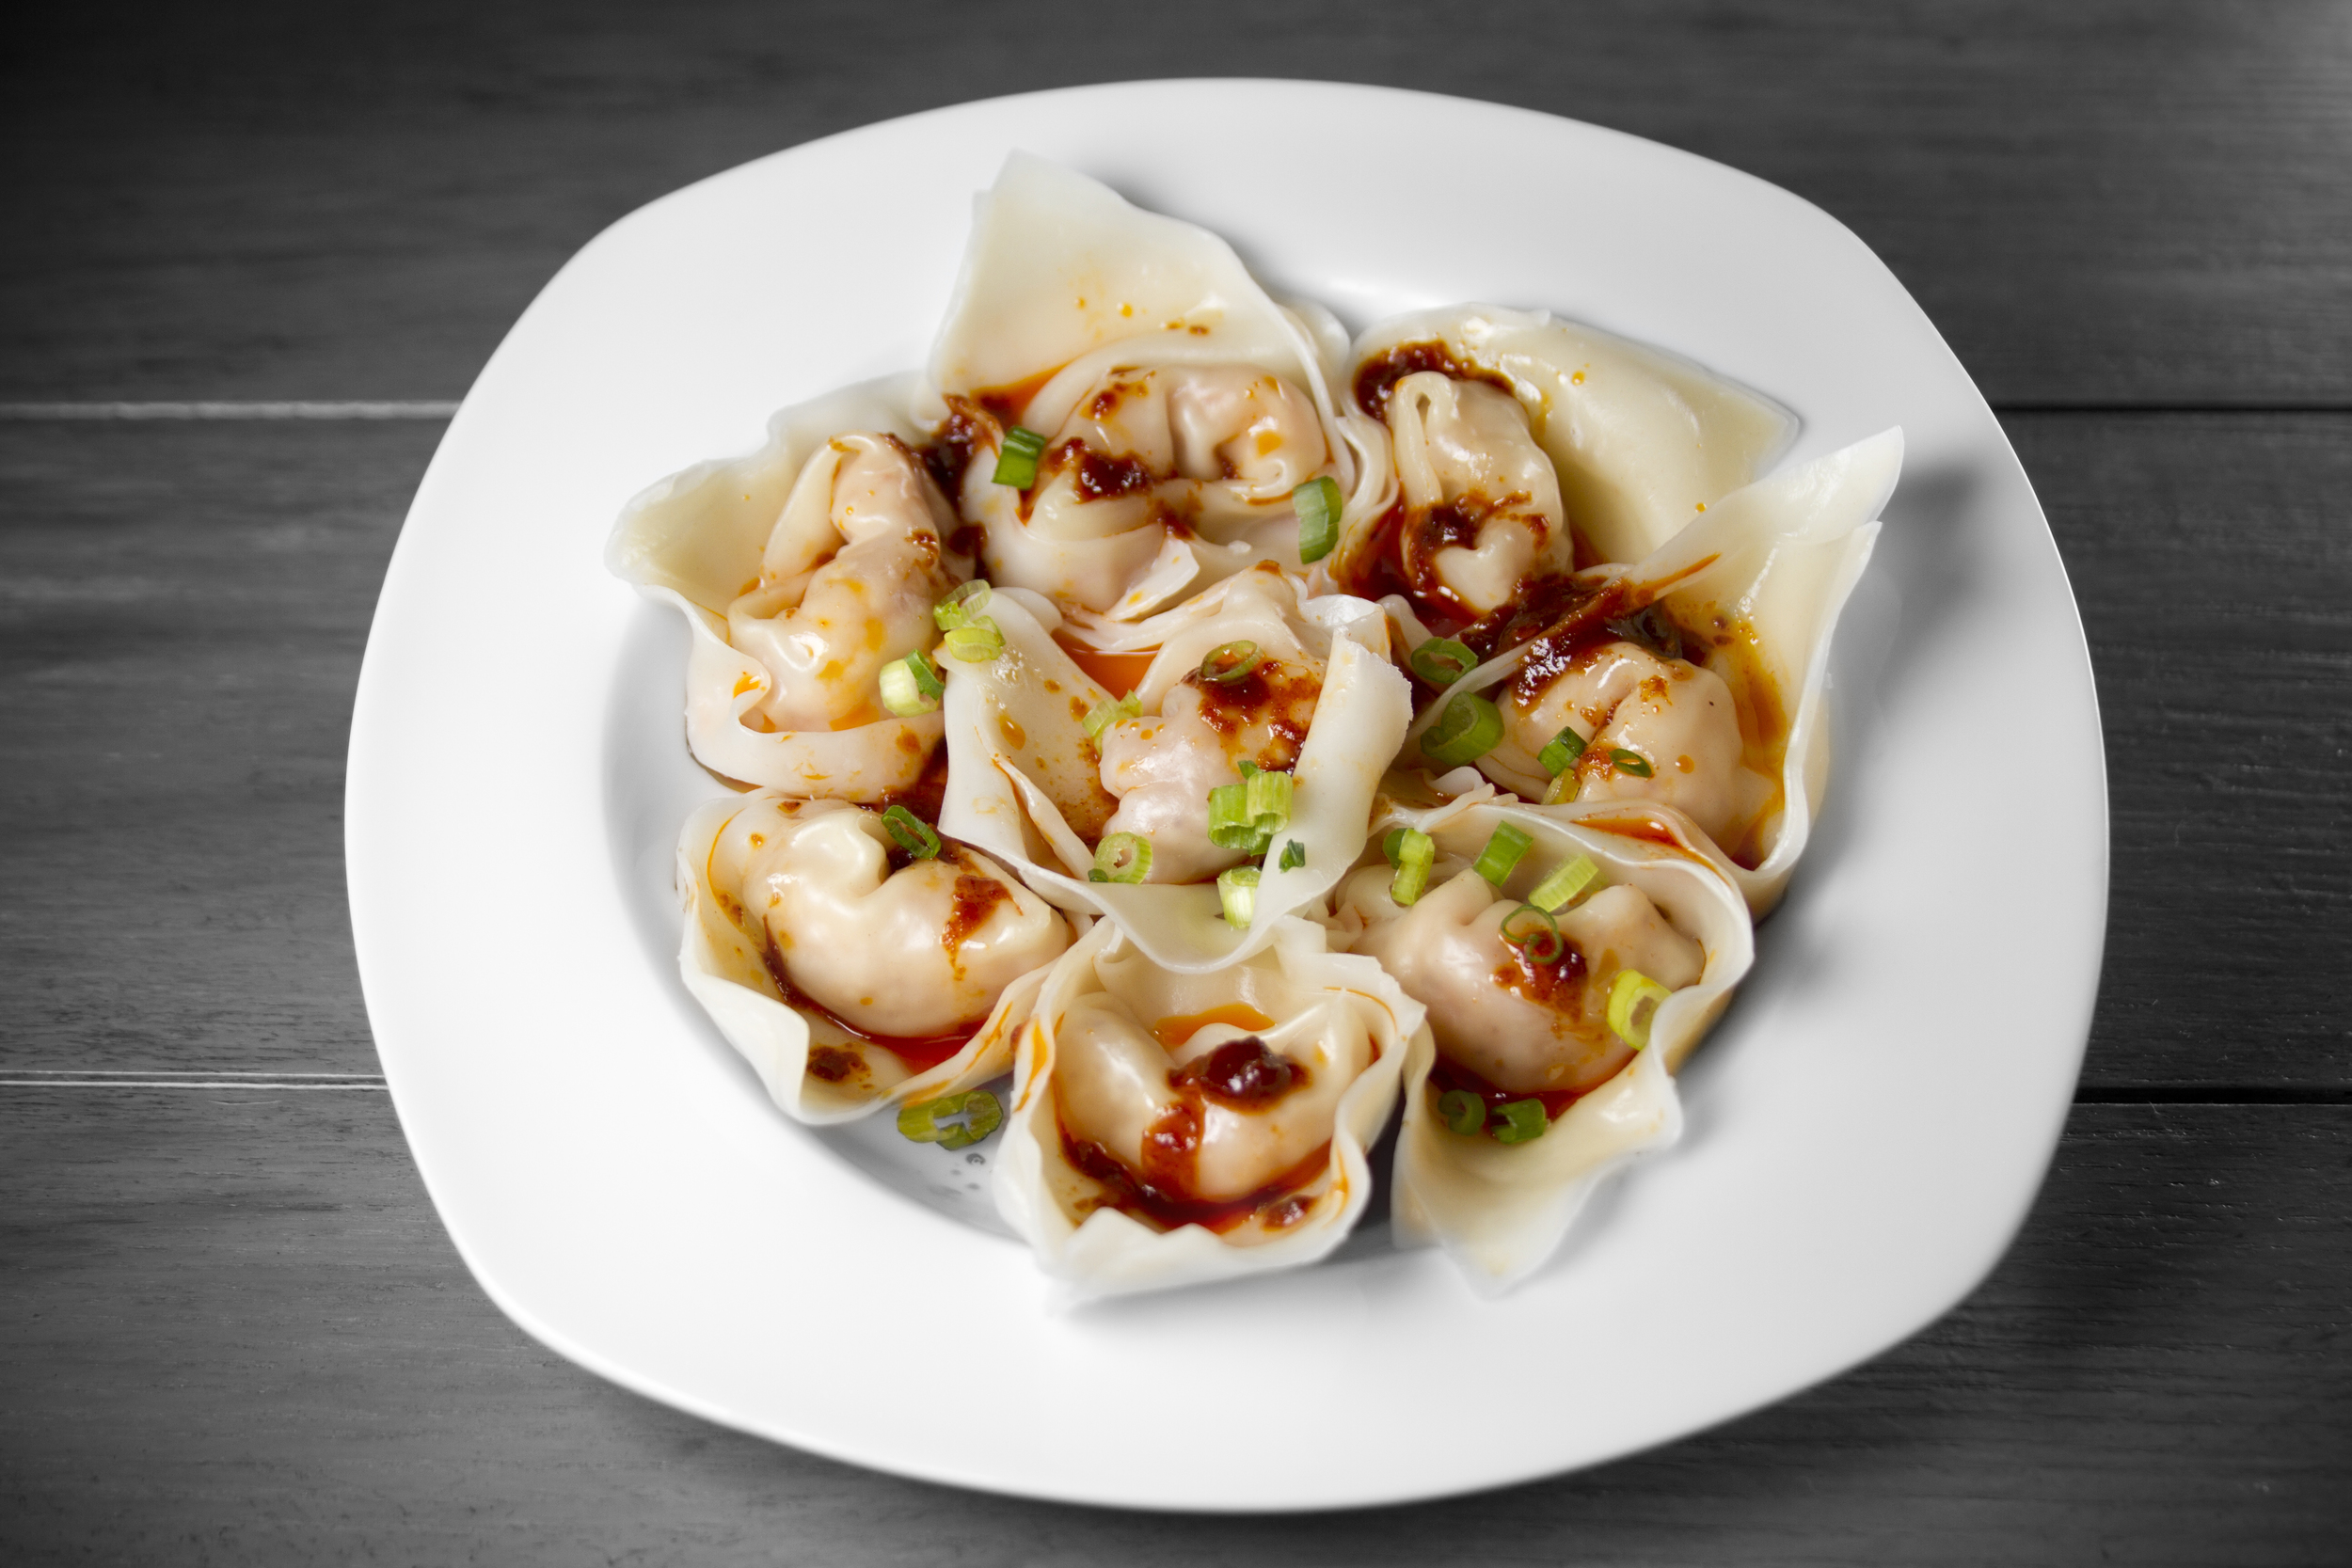 Spicy Chili Shrimp Pork Wonton Dumplings